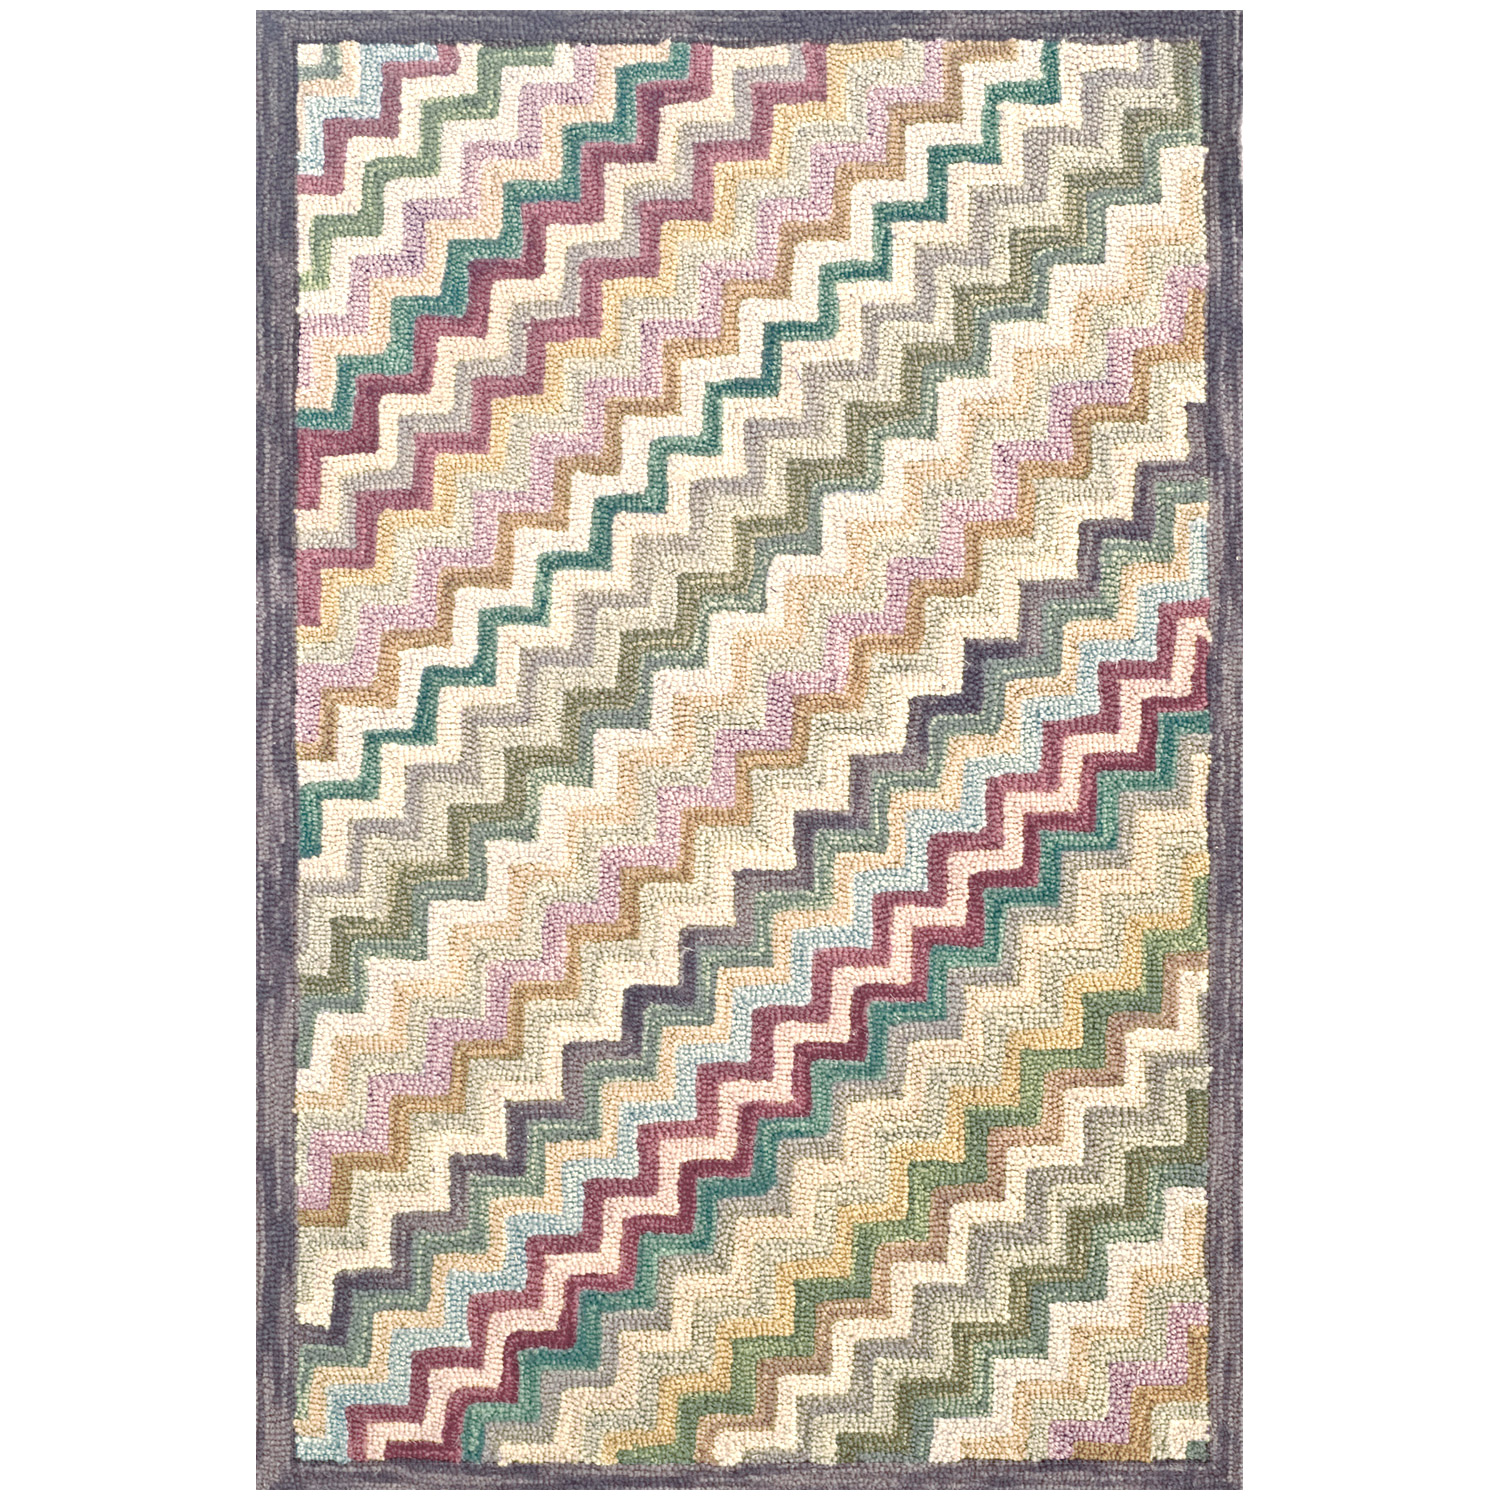 charming colorful Dash And Albert Rugs with zigzag pattern floor decor ideas